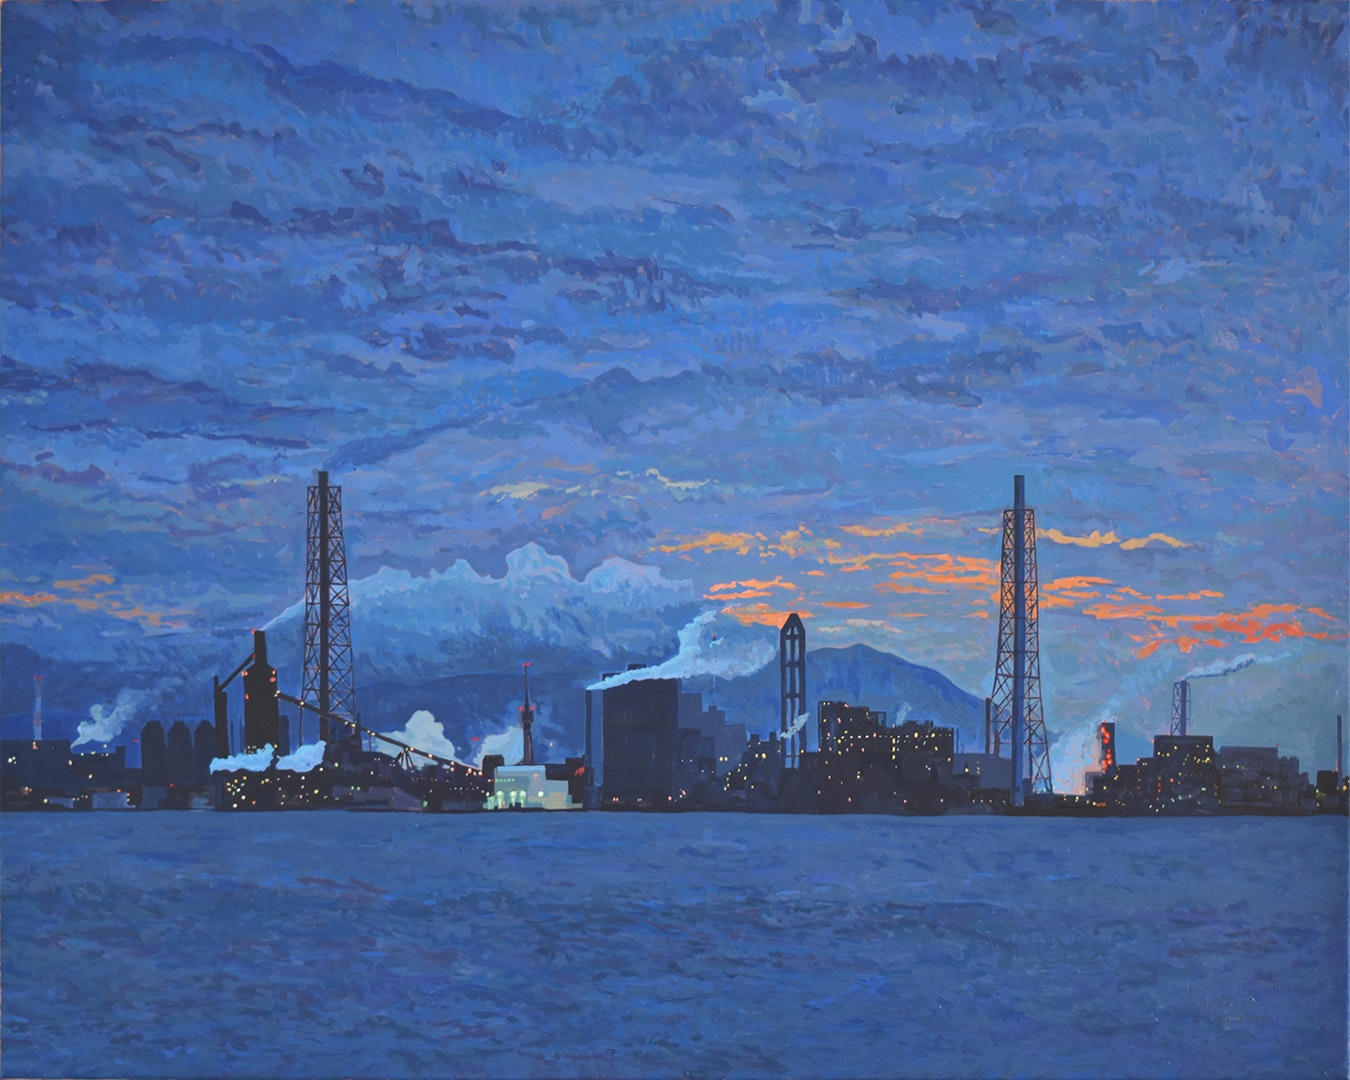 'Industrial Harbour of Kitakyushu II', Nicolas Depetris, Oil on canvas, 80 x 100 cm